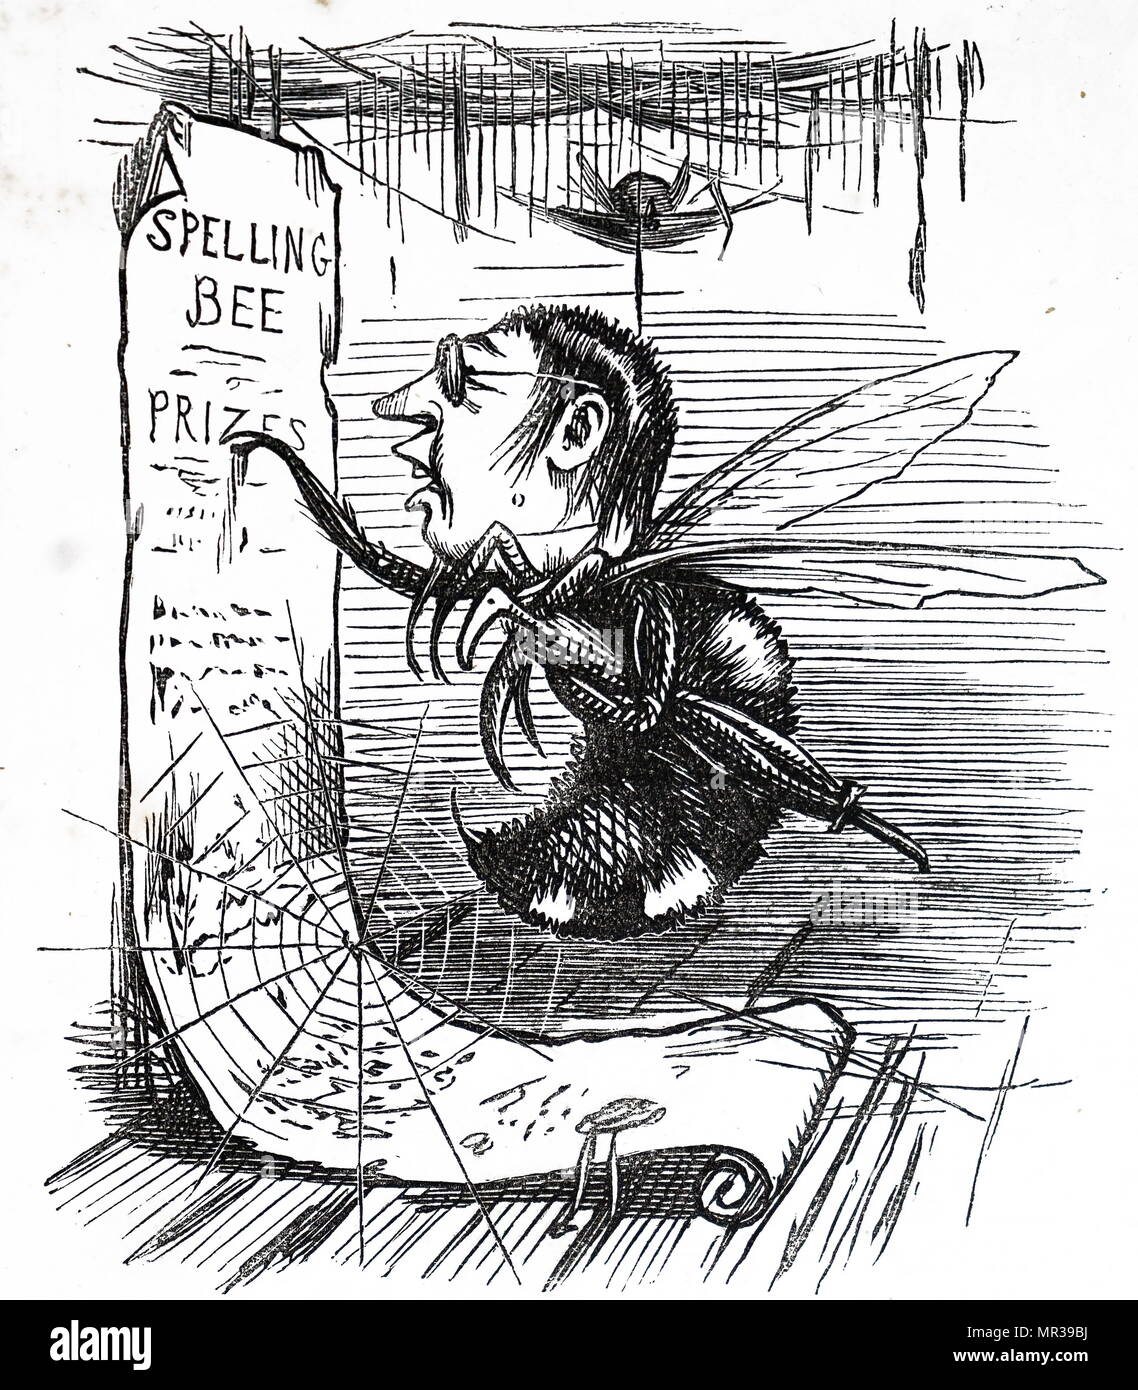 Cartoon depicting Isaac Pitman as a 'spelling bee'. Isaac Pitman (1813-1897) an English teacher who developed the most widely used system of shorthand, known now as Pitman shorthand. Dated 19th century - Stock Image